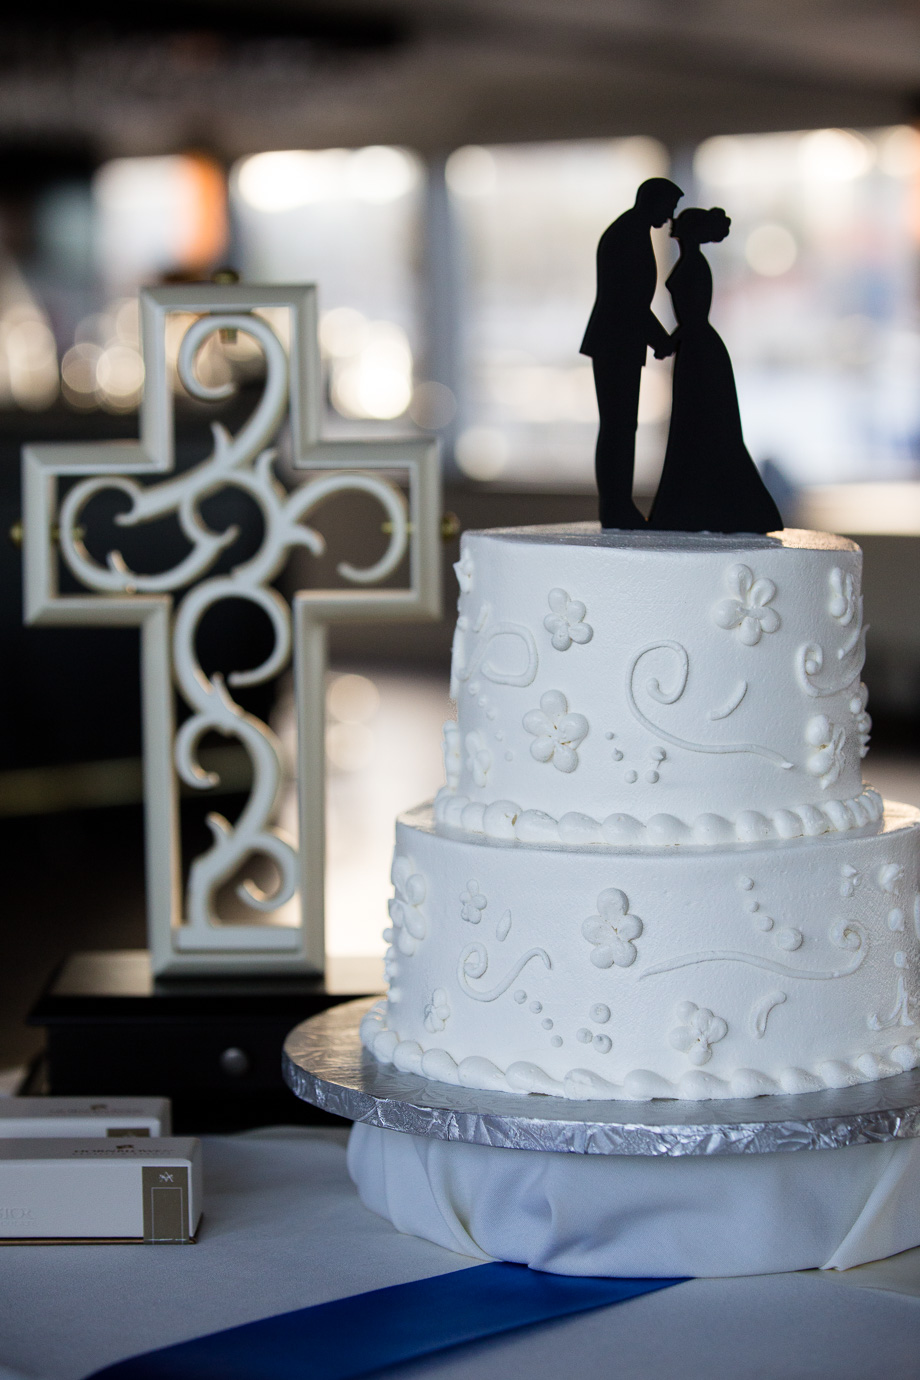 Wedding cake with silhouette cake topper and cross in background